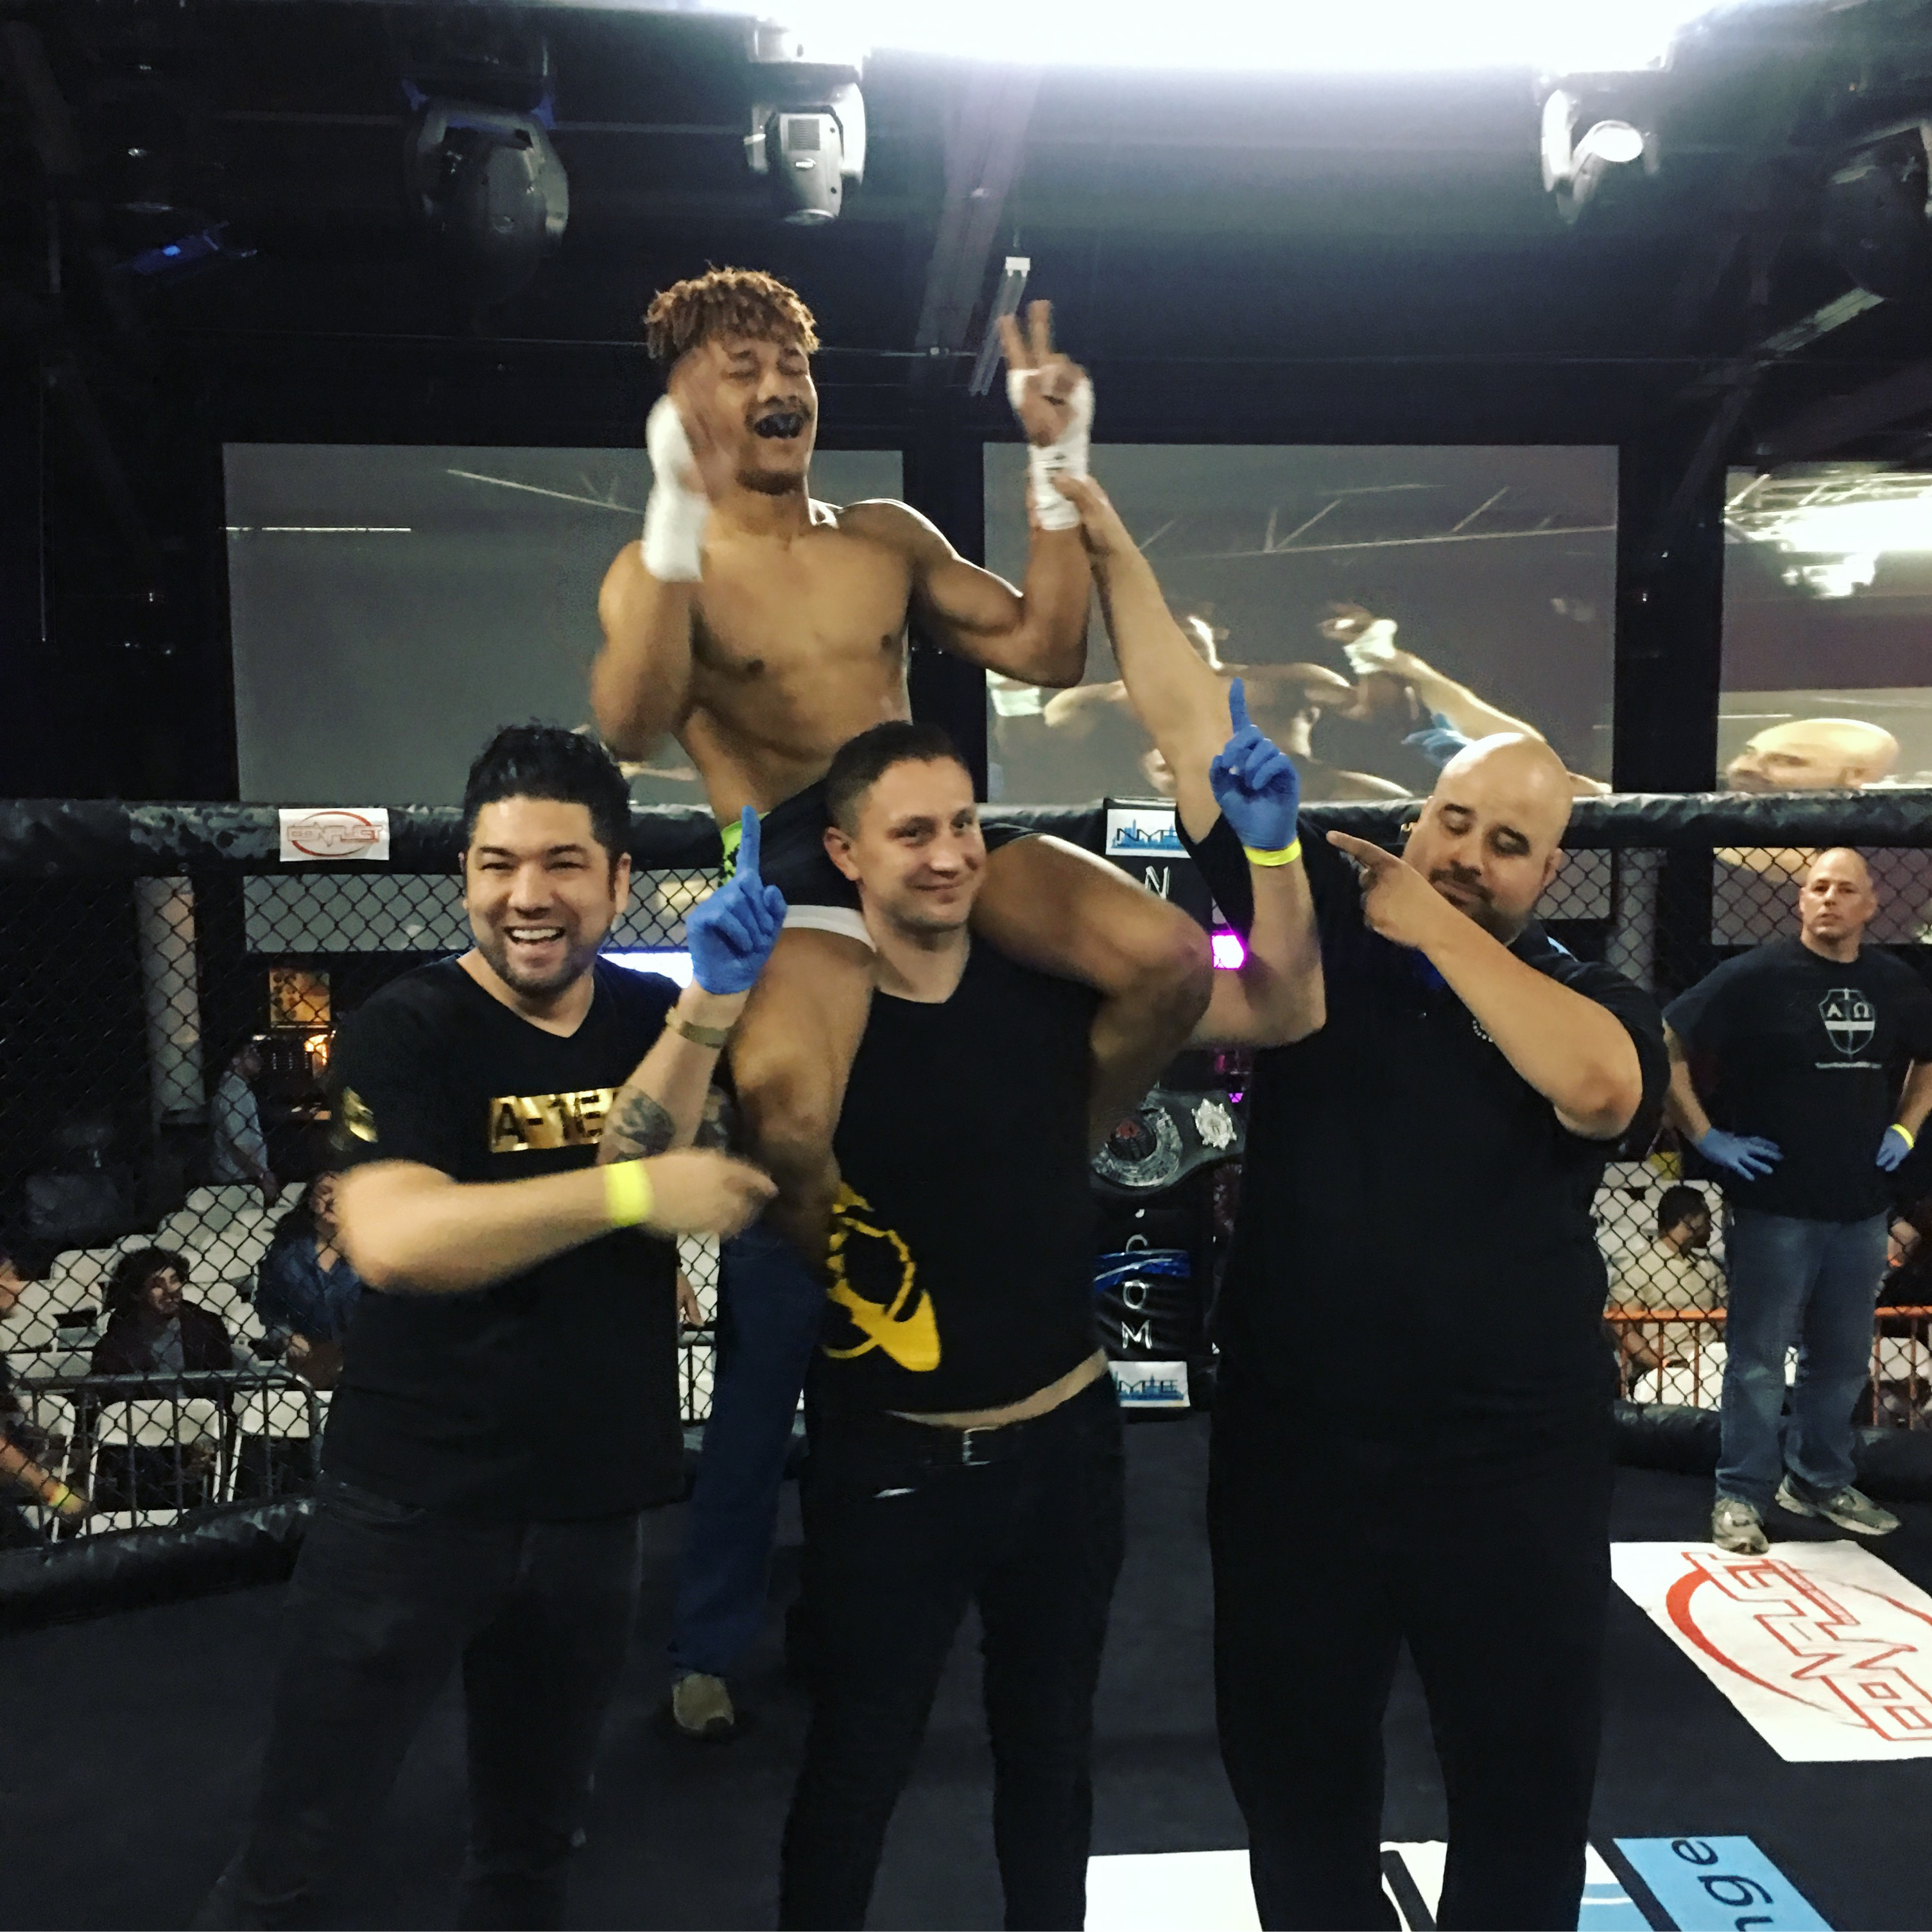 AMAA's Own Perez Figuera Wins His 4th Straight MMA Fight in a Heavier Weight Division